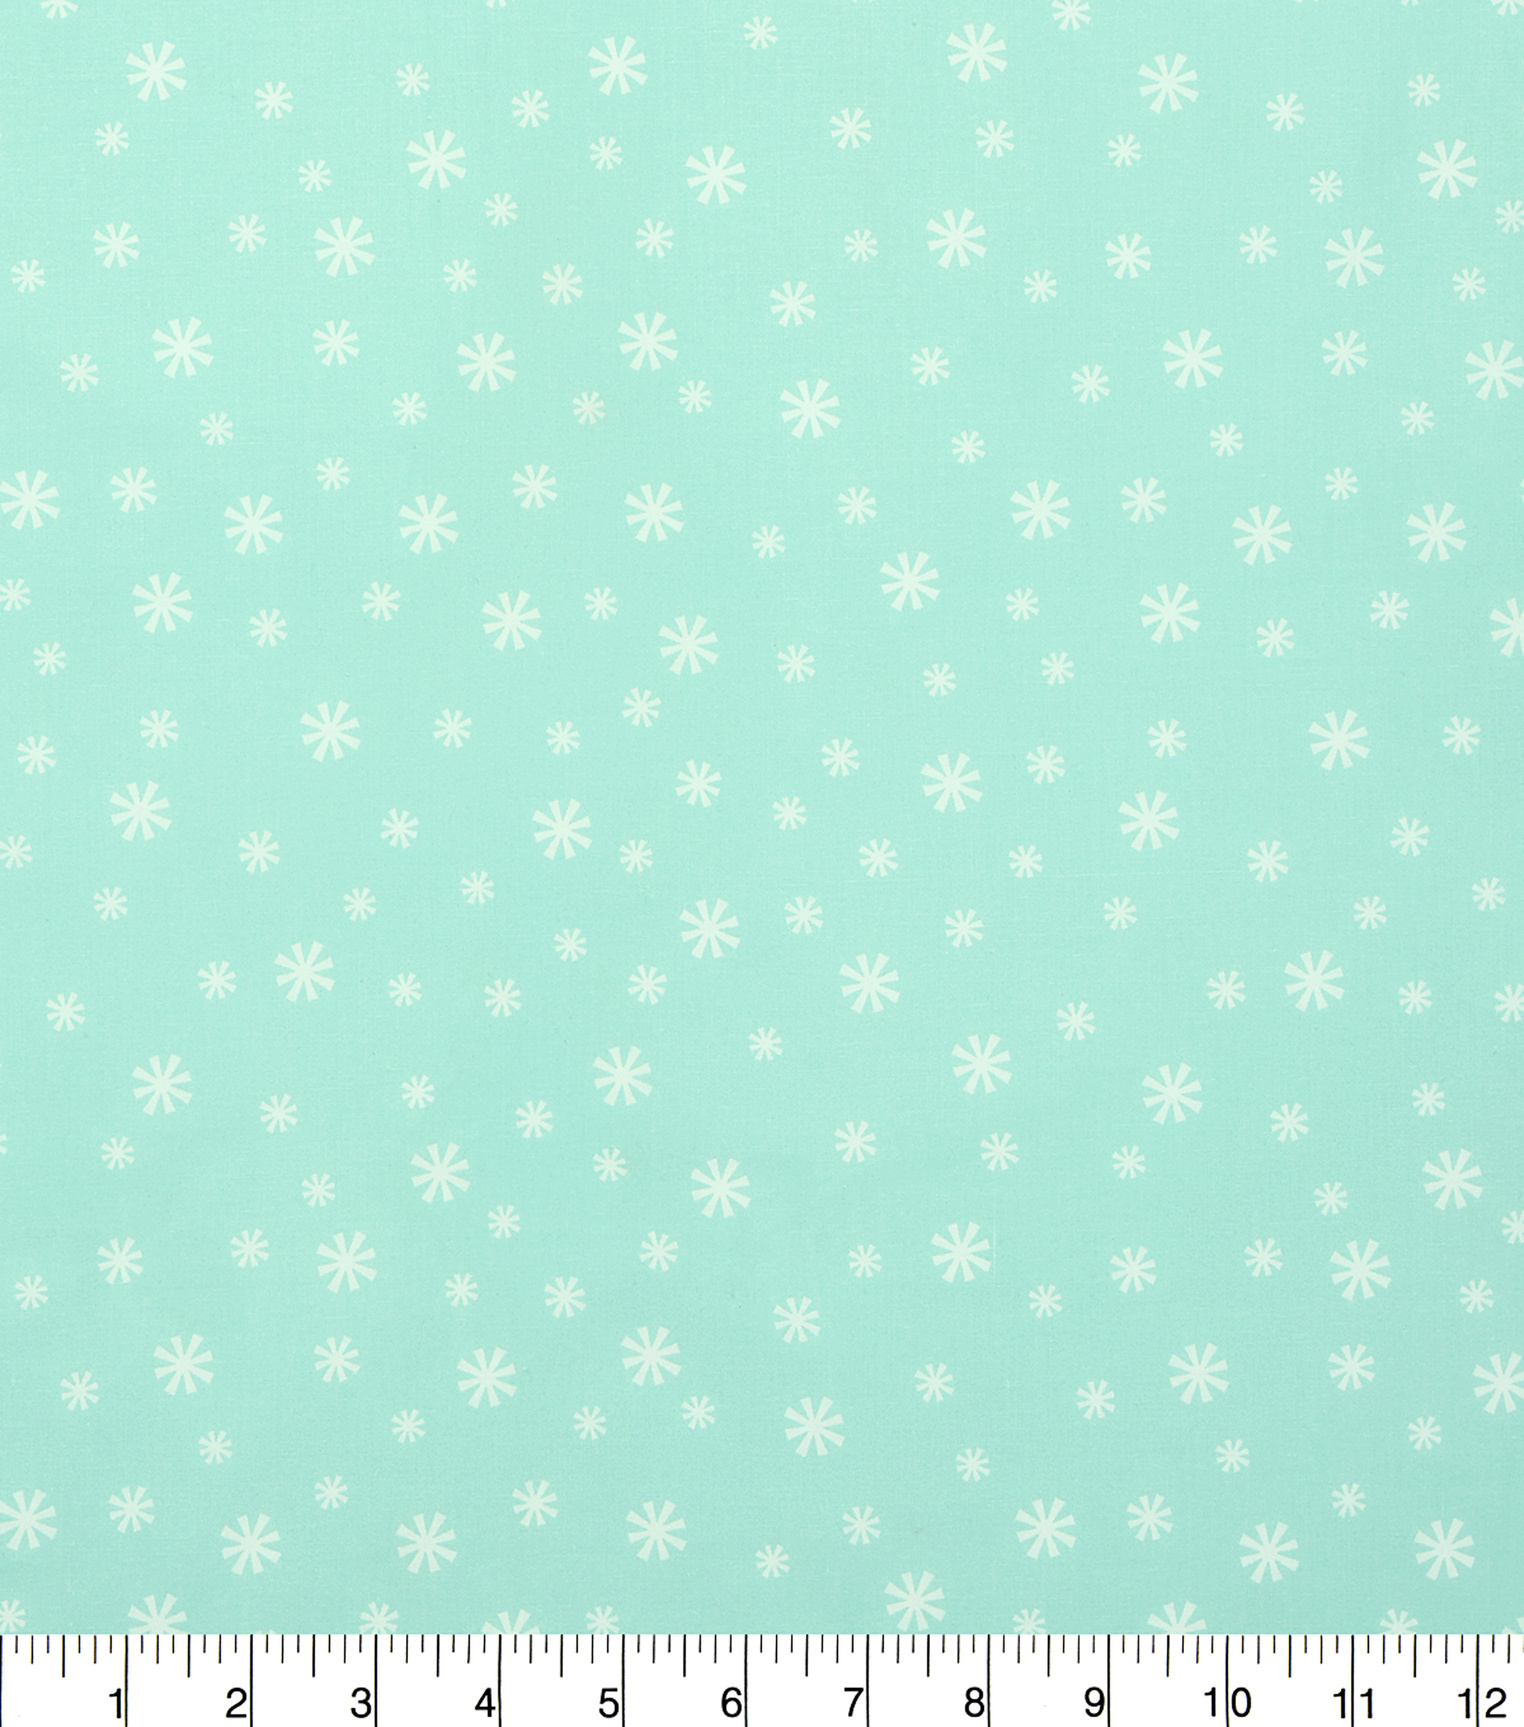 Holiday Cotton Fabric -Flakes on Turquiose